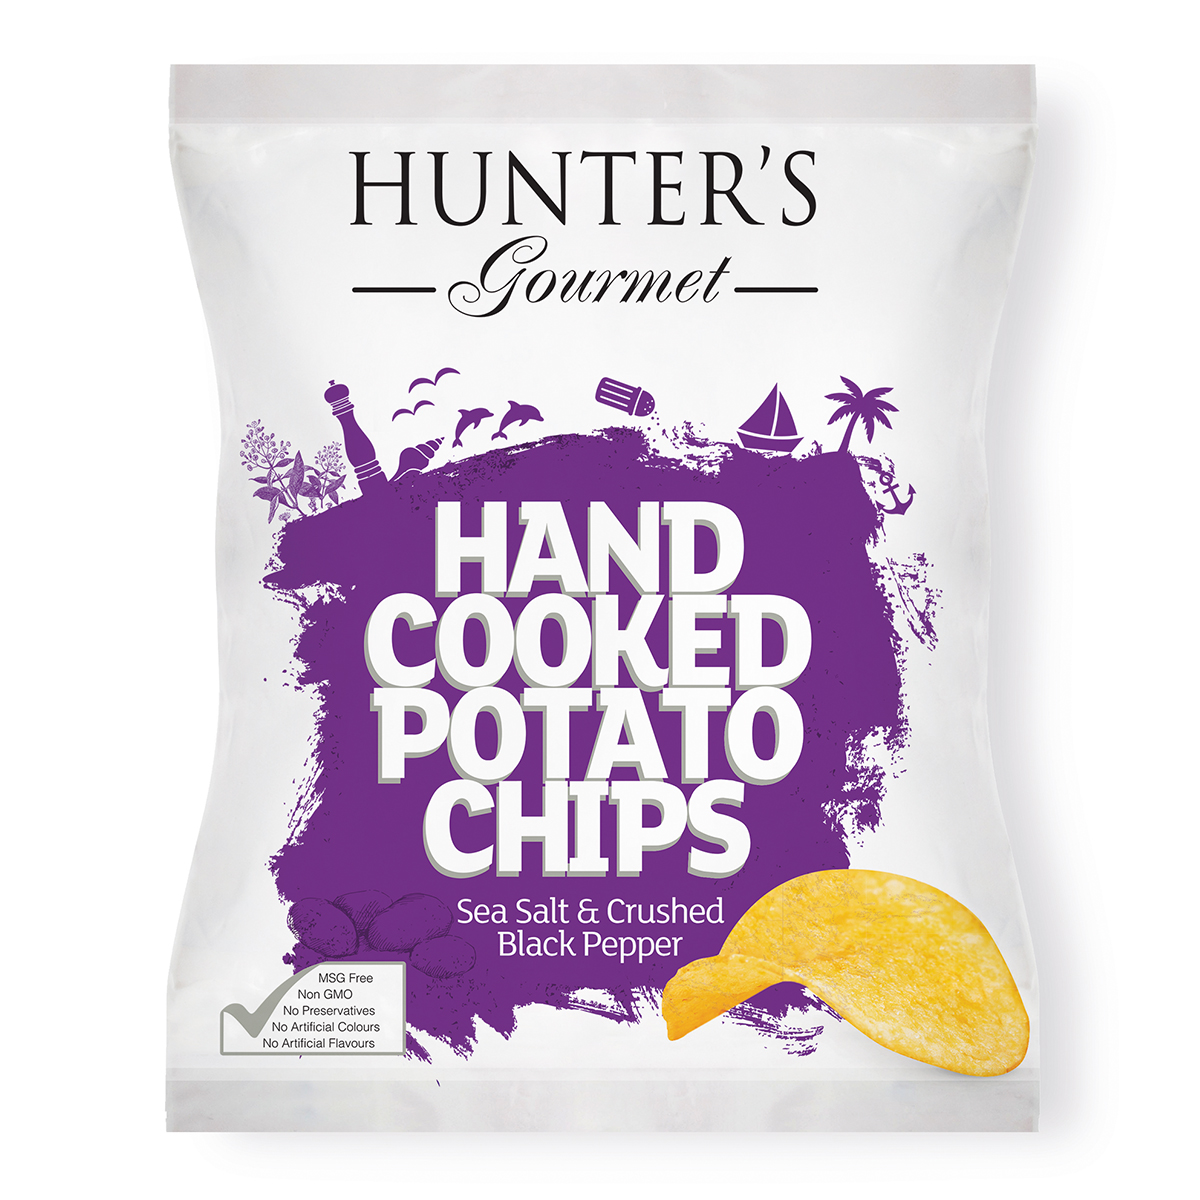 Hand Cooked Potato Chips - Sea Salt & Crushed Black Pepper (125gm)